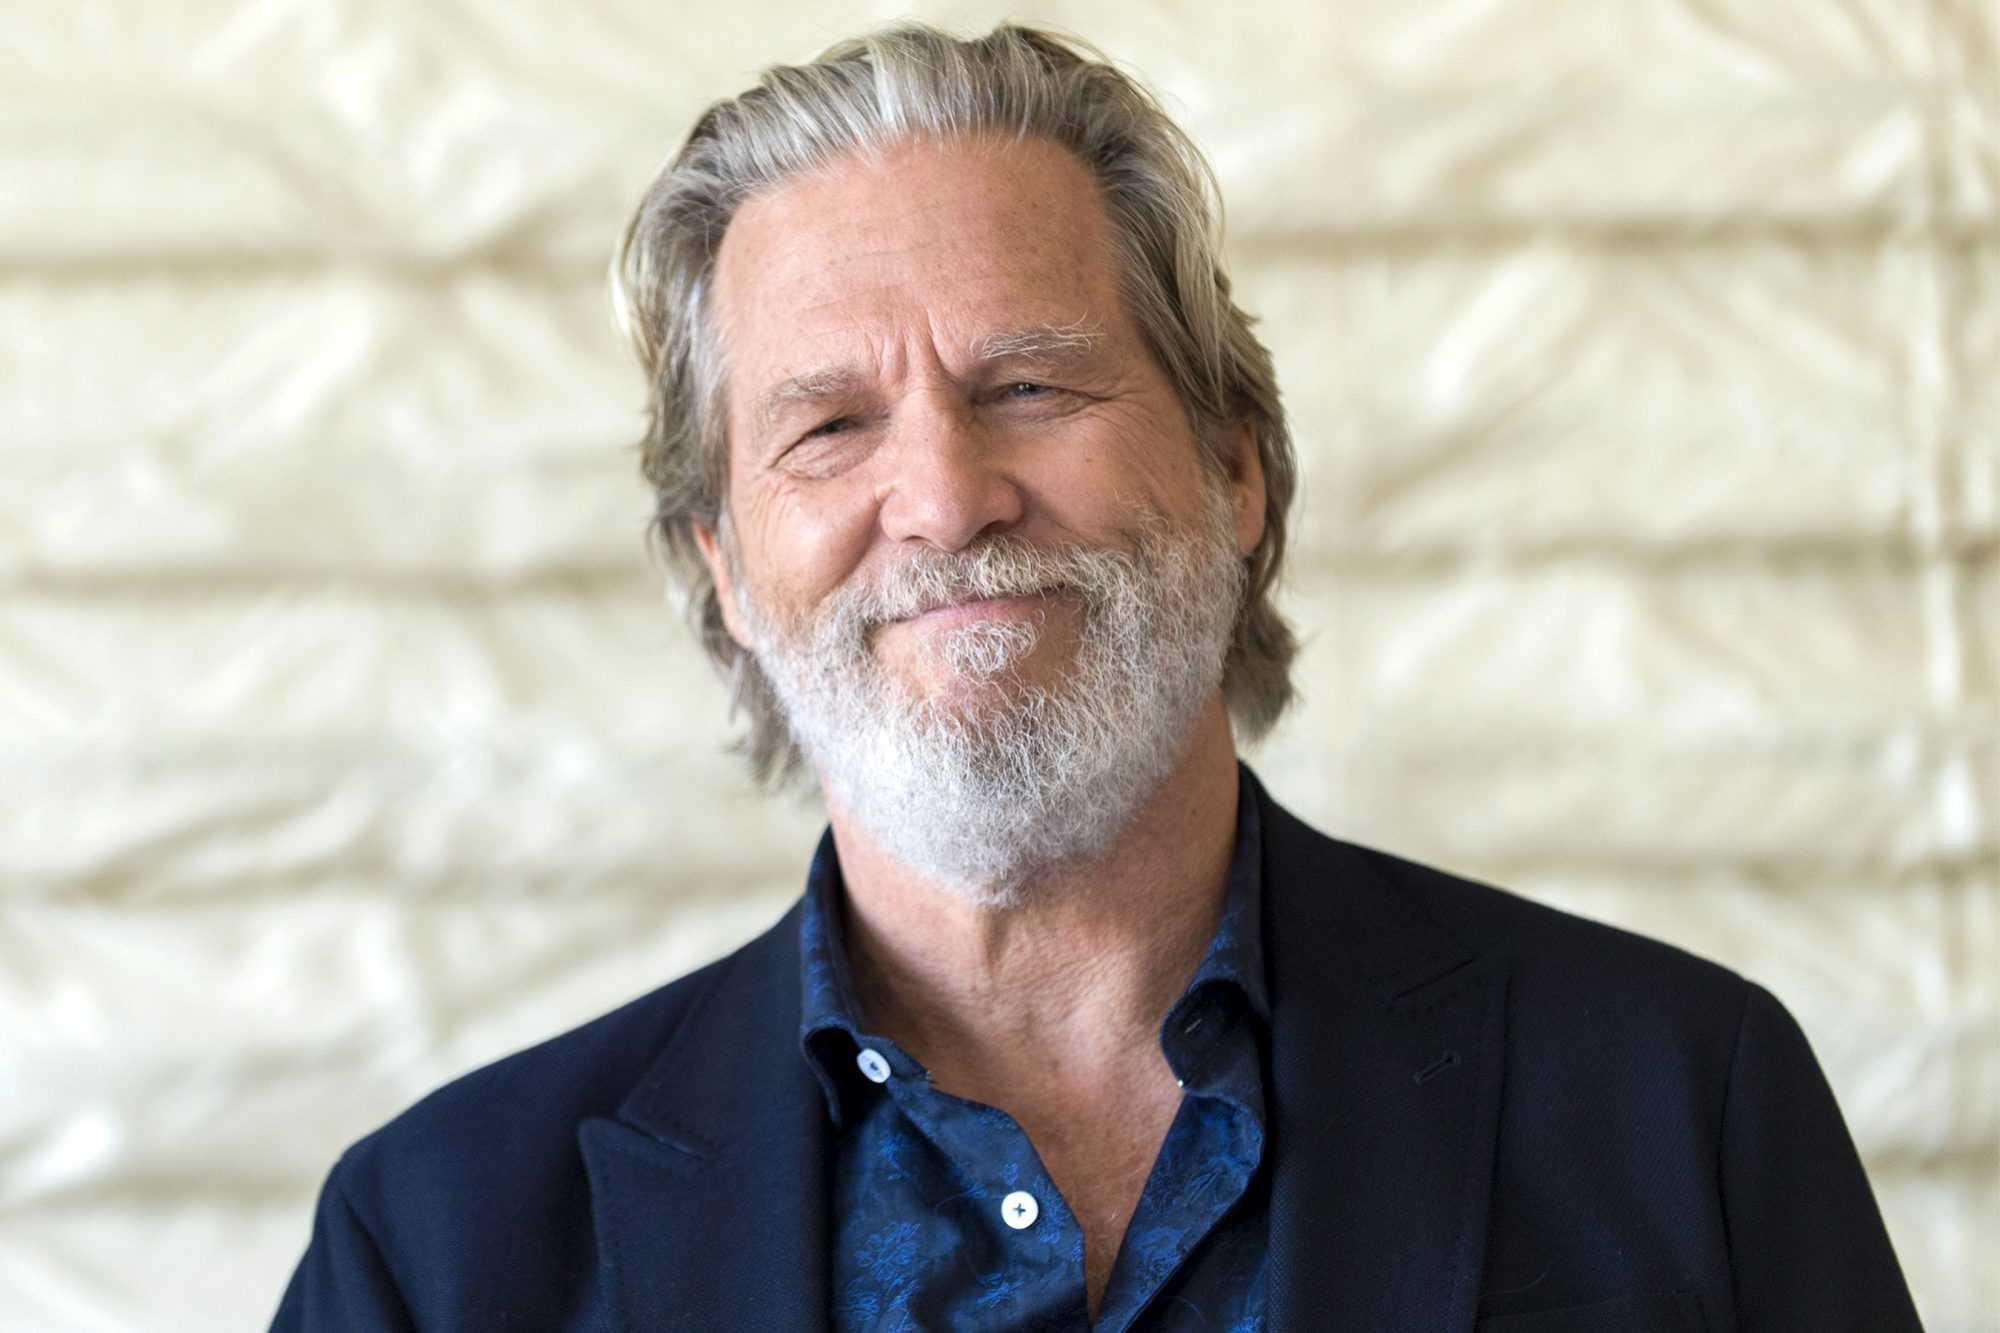 Jeff Bridges, who stars in 'Bad Times at El Royale', at the Roosevelt Hotel, Hollywood, USA - 23 Sep 2018